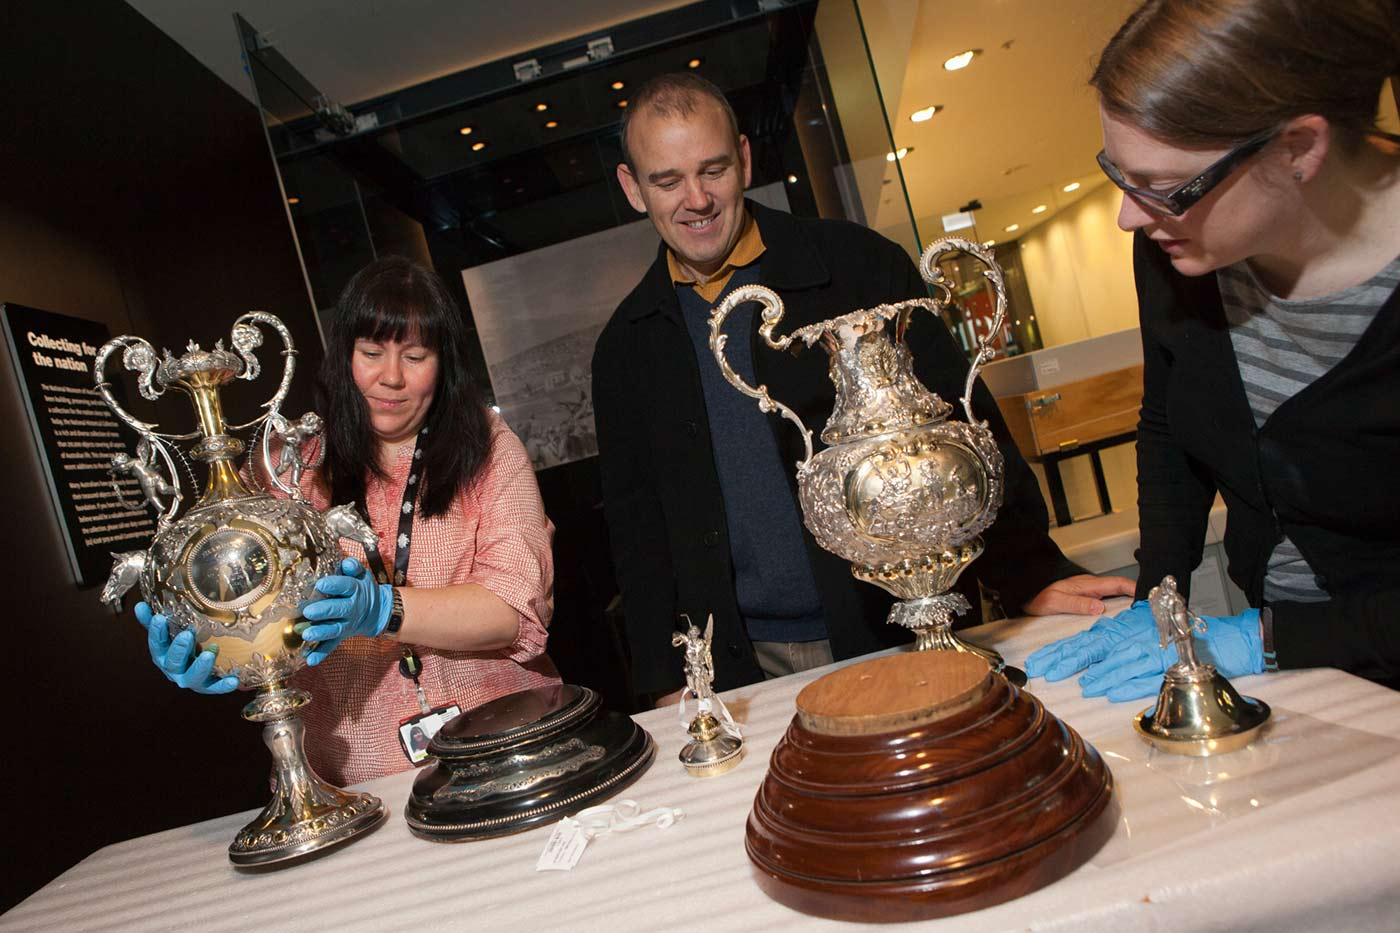 Colour photograph of three people inspecting trophies.